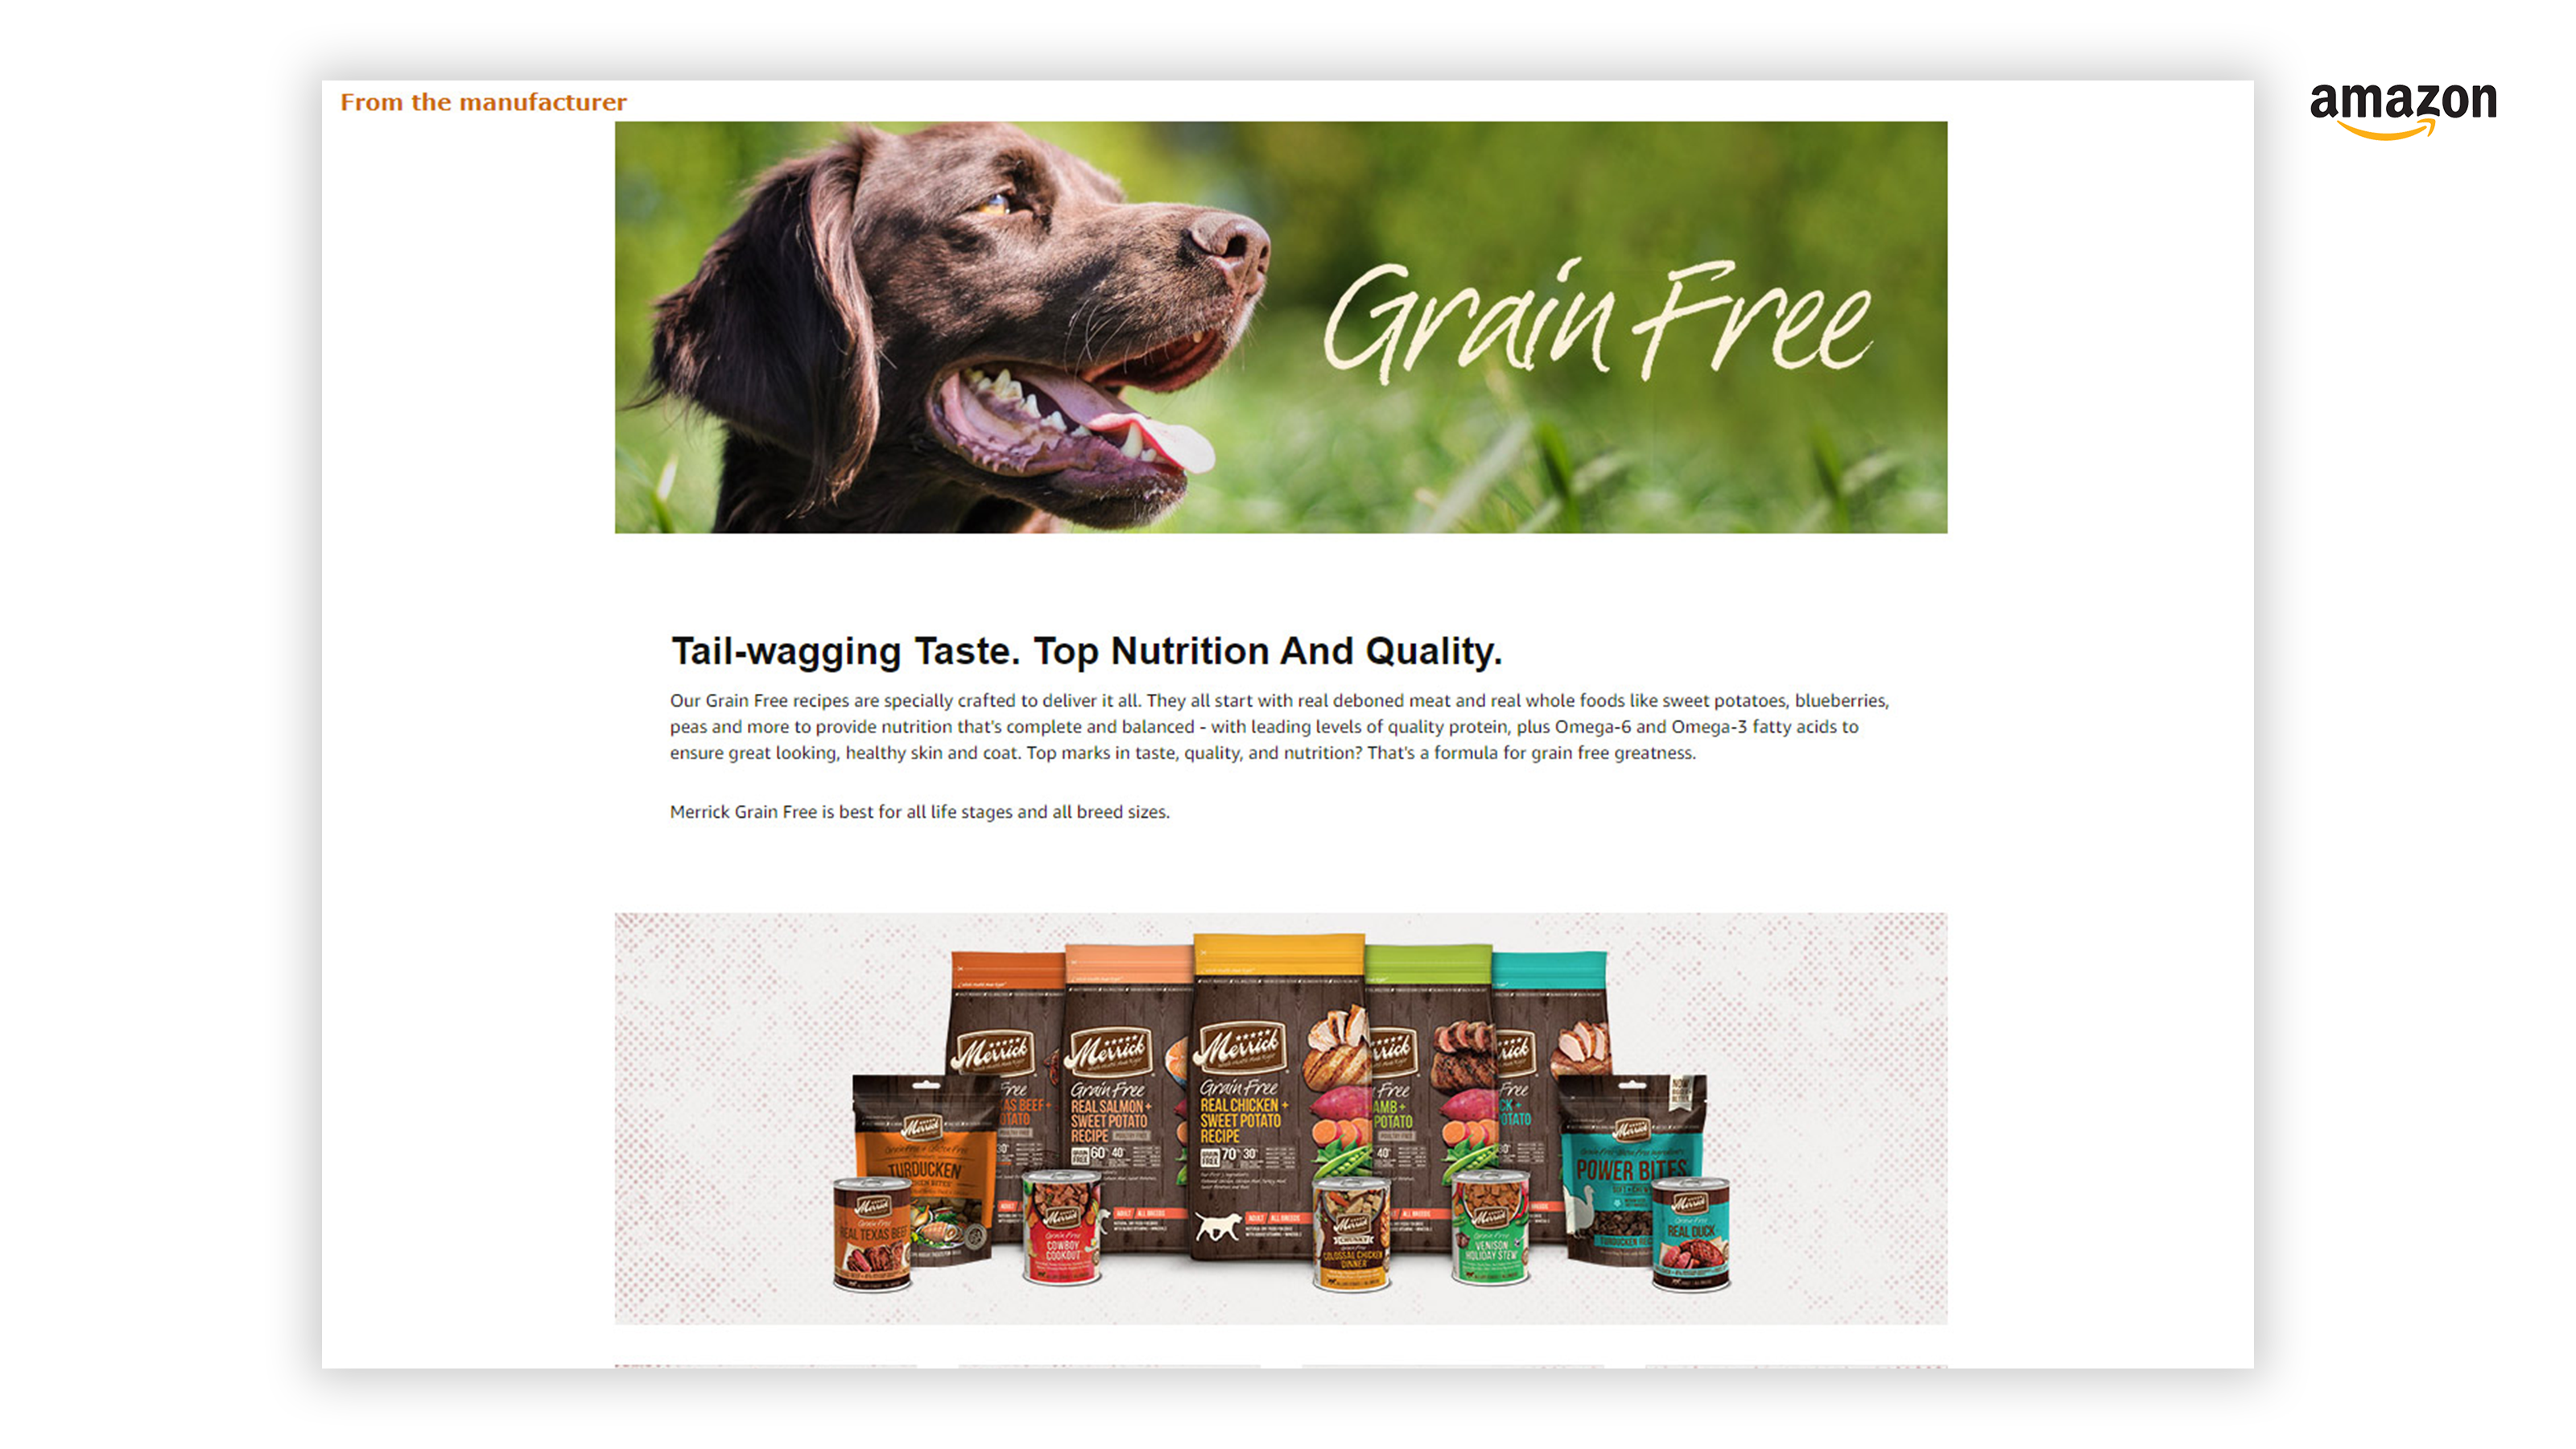 Merrick Grain Free Amazon A+ Enhanced Content Page